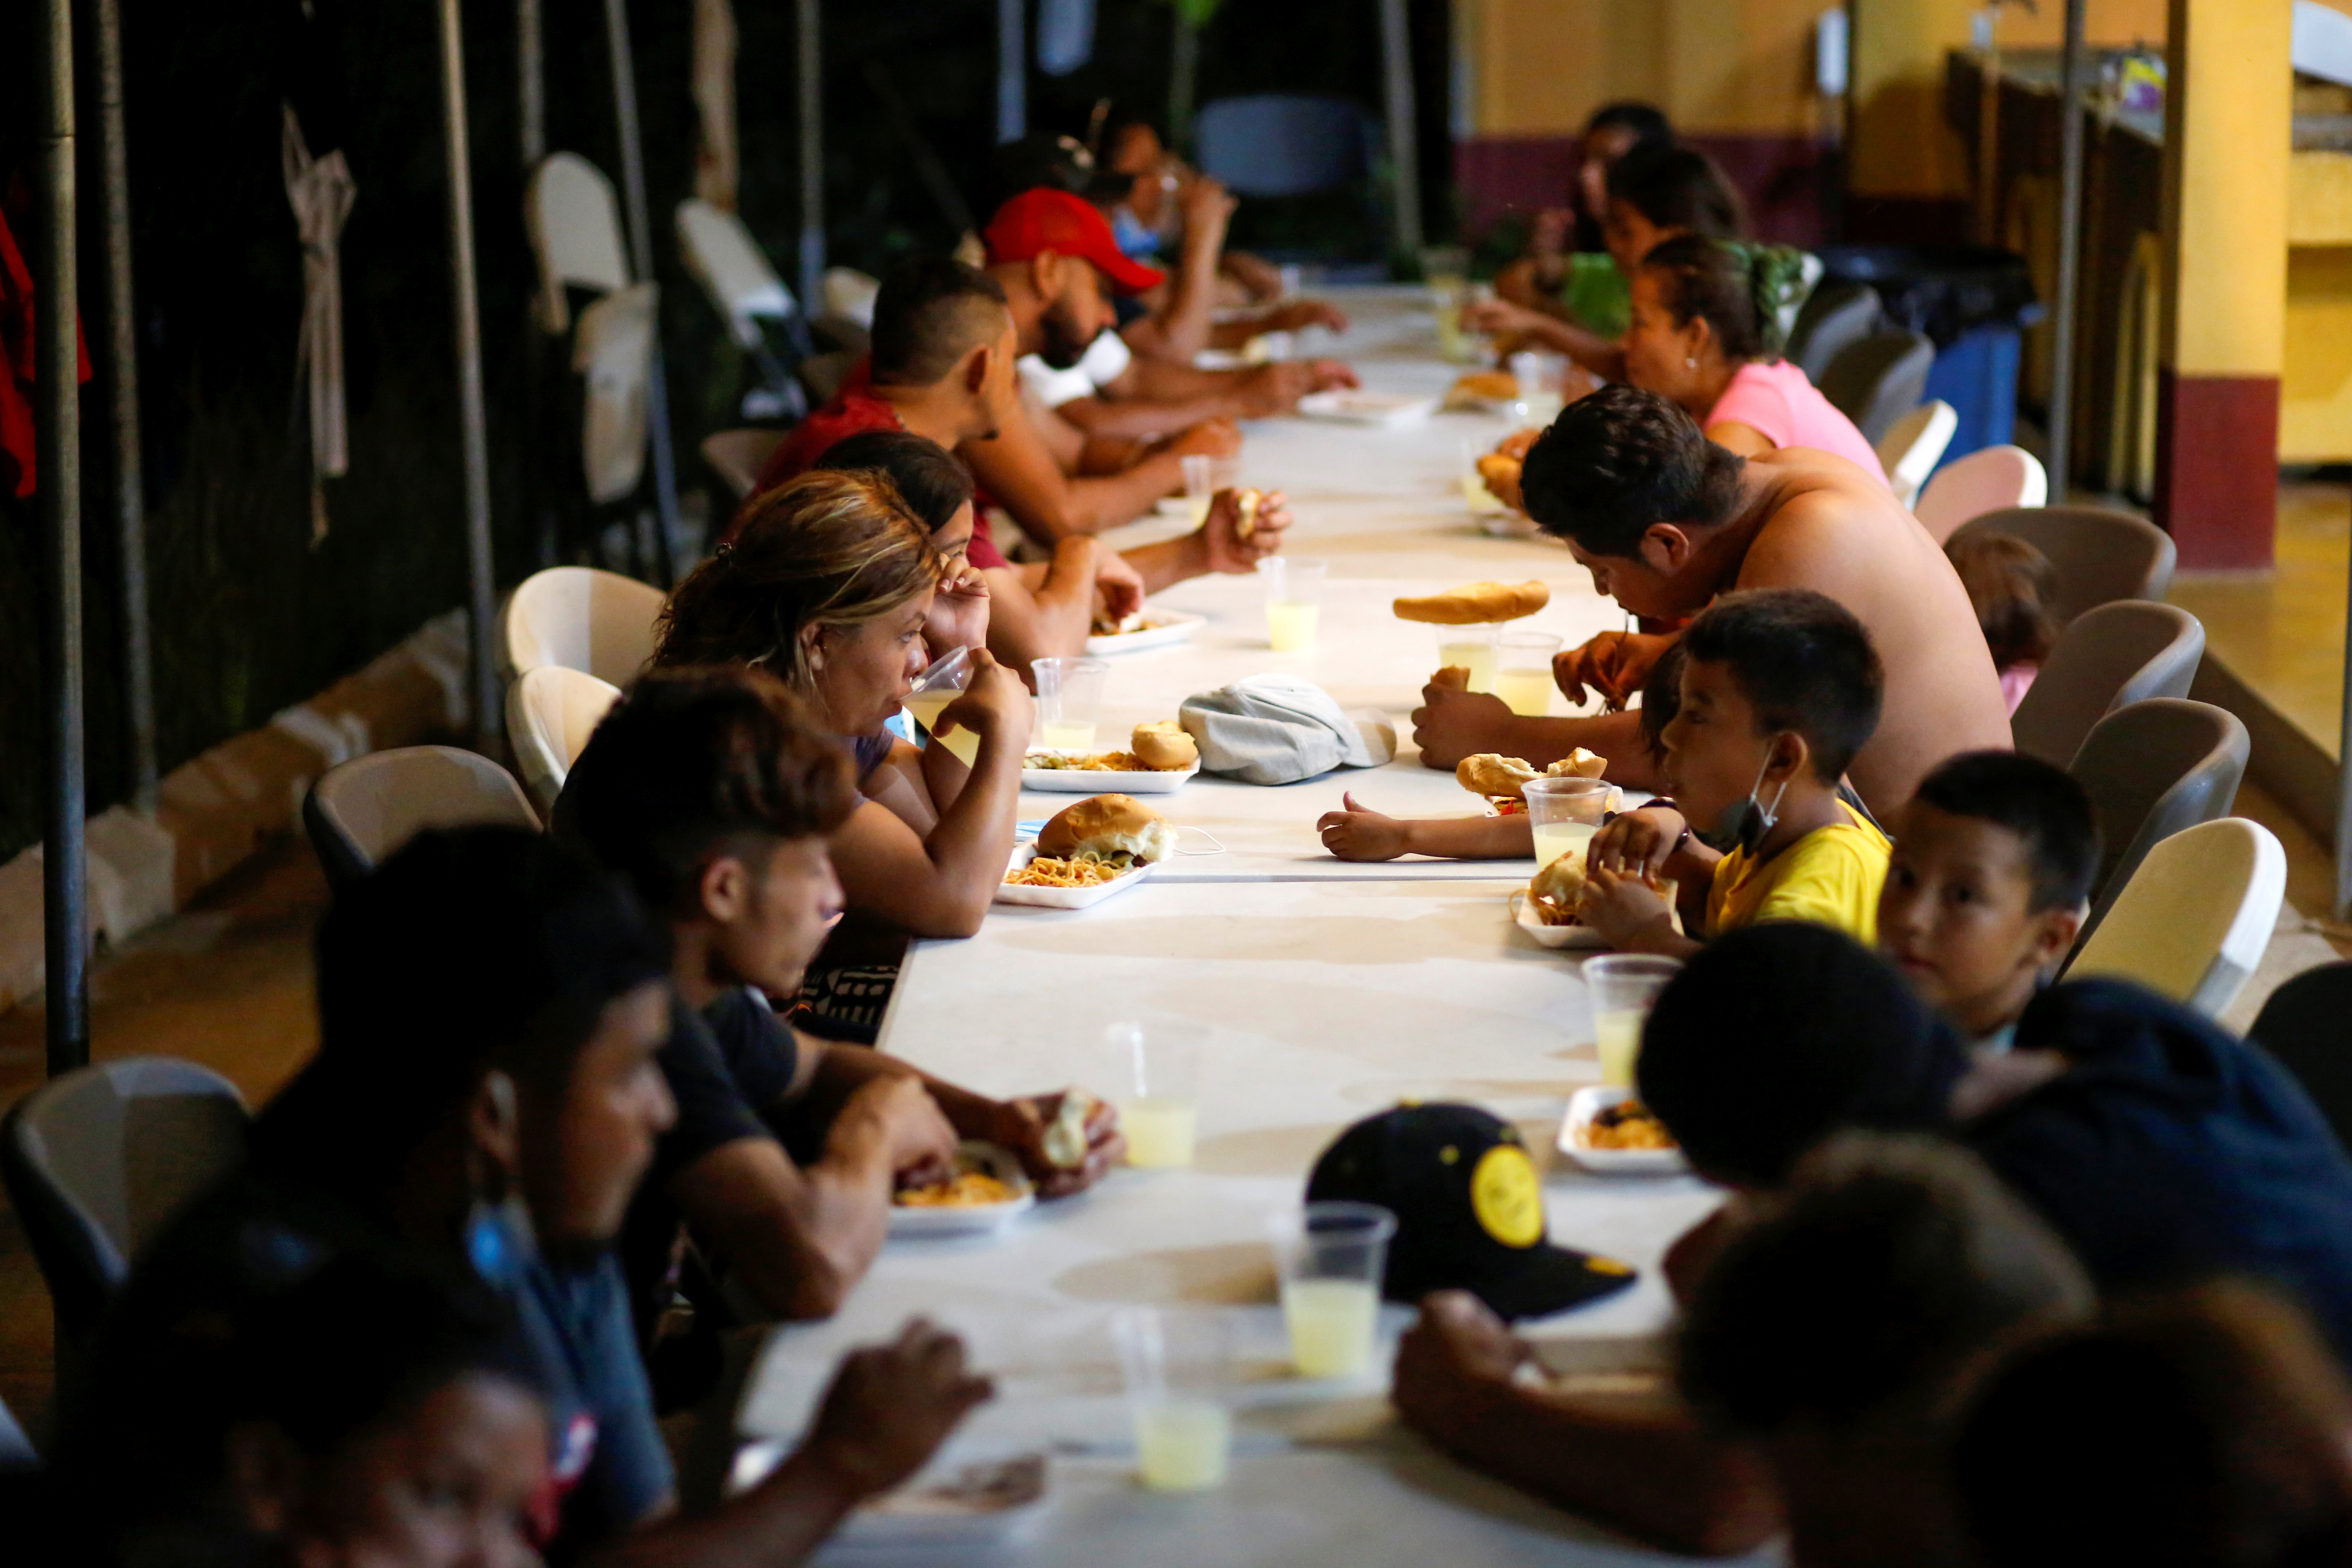 Central American migrants who were expelled by U.S. and Mexican officials, eat at a shelter, in El Ceibo, Guatemala August 15, 2021. REUTERS/Luis Echeverria